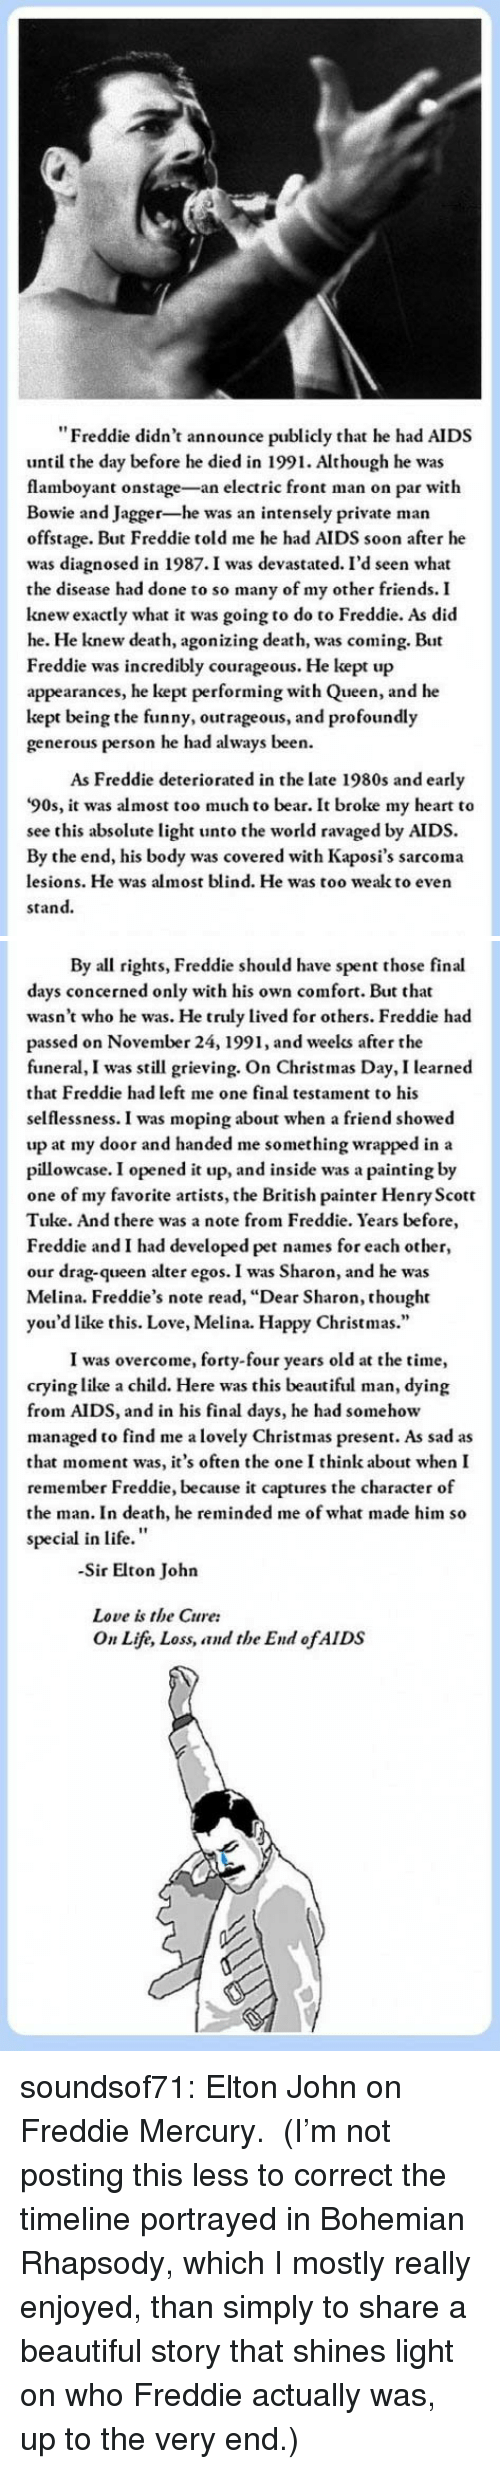 "Beautiful, Christmas, and Crying: ""Freddie didn't announce publicly that he had AIDS  until the day before he died in 1991. Although he was  flamboyant onstage-an electric front man on par with  Bowie and Jagger-he was an intensely private man  offstage. But Freddie told me he had AIDS soon after he  was diagnosed in 1987.I was devastated. I'd seen what  the disease had done to so many of my other friends. I  knew exactly what it was going to do to Freddie. As did  he. He knew death, agonizing death, was coming. But  Freddie was incredibly courageous. He kept up  appearances, he kept performing with Queen, and he  kept being the funny, outrageous, and profoundly  generous person he had always been.  As Freddie deteriorated in the late 1980s and early  '90s, it was almost too much to bear. It broke my heart to  see this absolute light unto the world ravaged by AIDS.  By the end, his body was covered with Kaposi's sarcoma  lesions. He was almost blind. He was too wealk to even  stand.   By all rights, Freddie should have spent those final  days concerned only with his own comfort. But that  wasn't who he was. He truly lived for others. Freddie had  passed on November 24, 1991, and weelks after the  funeral, I was still grieving. On Christmas Day, I learned  that Freddie had left me one final testament to his  selflessness. I was moping about when a friend showed  up at my door and handed me something wrapped in a  pillowcase. I opened it up, and inside was a painting by  one of my favorite artists, the British painter Henry Scott  Tuke. And there was a note from Freddie. Years before  Freddie and I had developed pet names for each other,  our drag-queen alter egos. I was Sharon, and he was  Melina. Freddie's note read, ""Dear Sharon, thought  you'd like this. Love, Melina. Happy Christmas.""  I was overcome, forty-four years old at the time,  crying like a child. Here was this beautiful man, dying  from AIDS, and in his final days, he had somehow  managed to find me a lovely Christmas present. As sad as  that moment was, it's often the one I think about when I  remember Freddie, because it captures the character of  the man. In death, he reminded me of what made him so  special in life.""  -Sir Elton John  Love is the Cure:  On Life, Loss, and the End ofAIDS soundsof71:  Elton John on Freddie Mercury.  (I'm not posting this less to correct the timeline portrayed in Bohemian Rhapsody, which I mostly really enjoyed, than simply to share a beautiful story that shines light on who Freddie actually was, up to the very end.)"